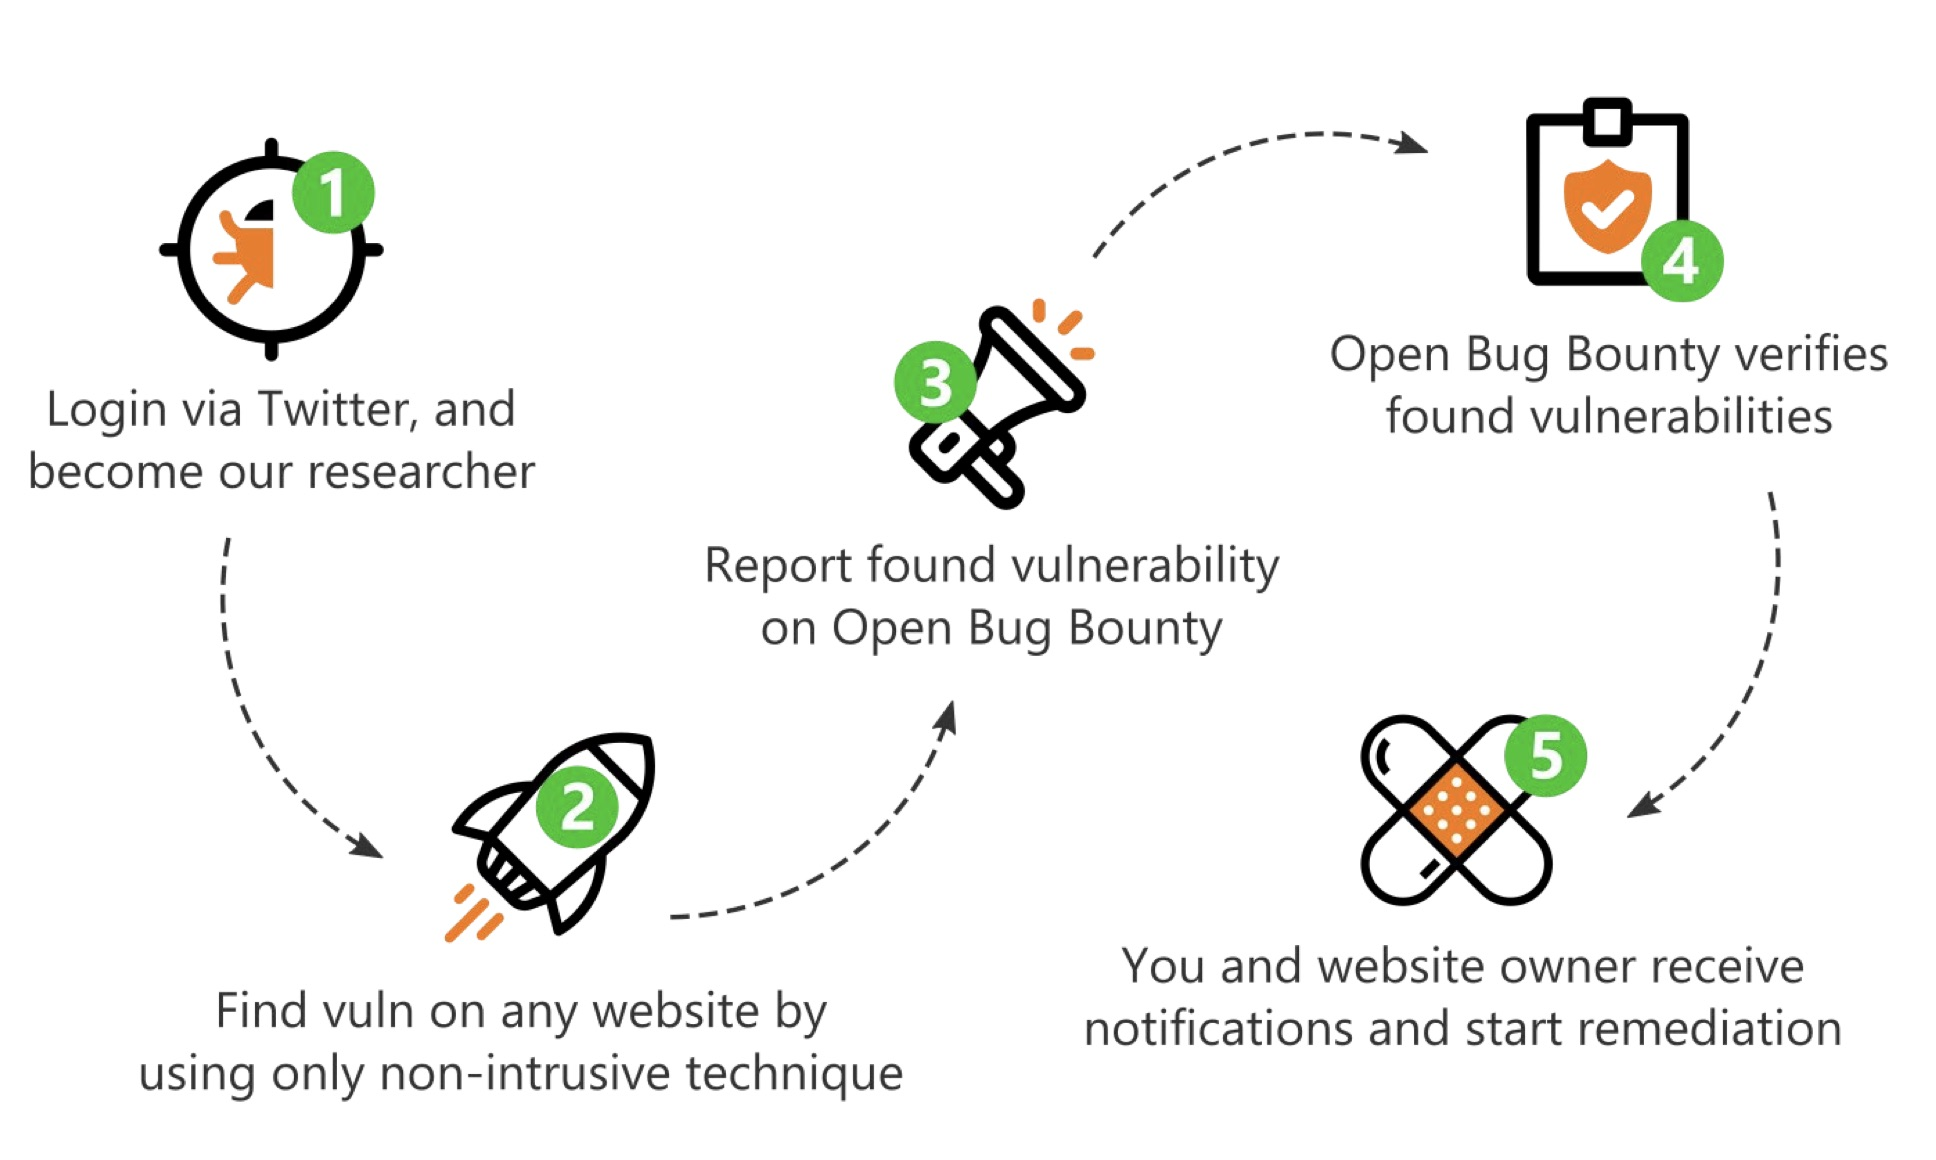 image showing how to get involved in open bug bounty